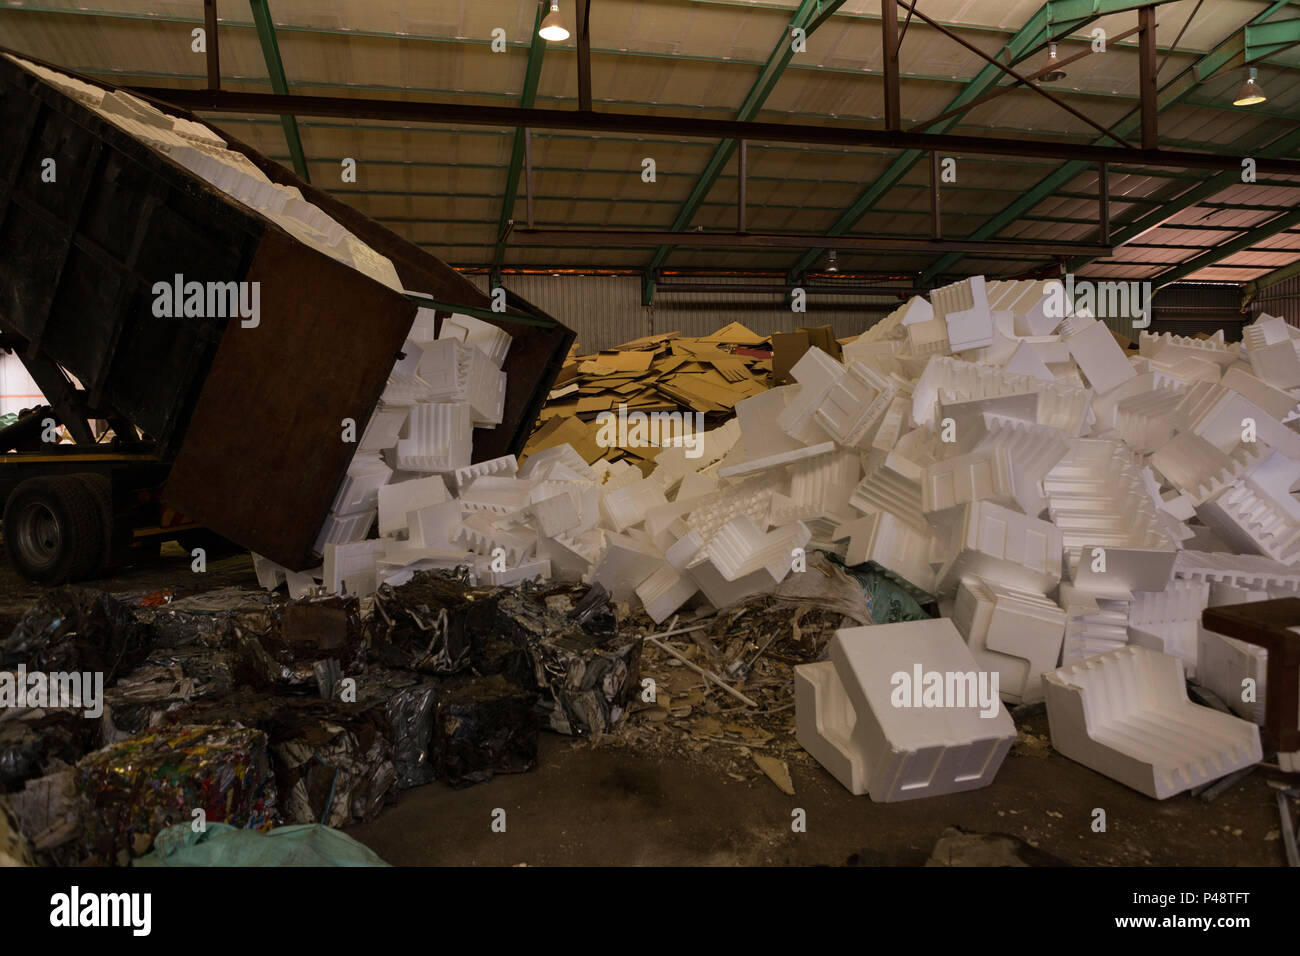 Truck emptying thermocol in the scrapyard Stock Photo: 209177916 - Alamy